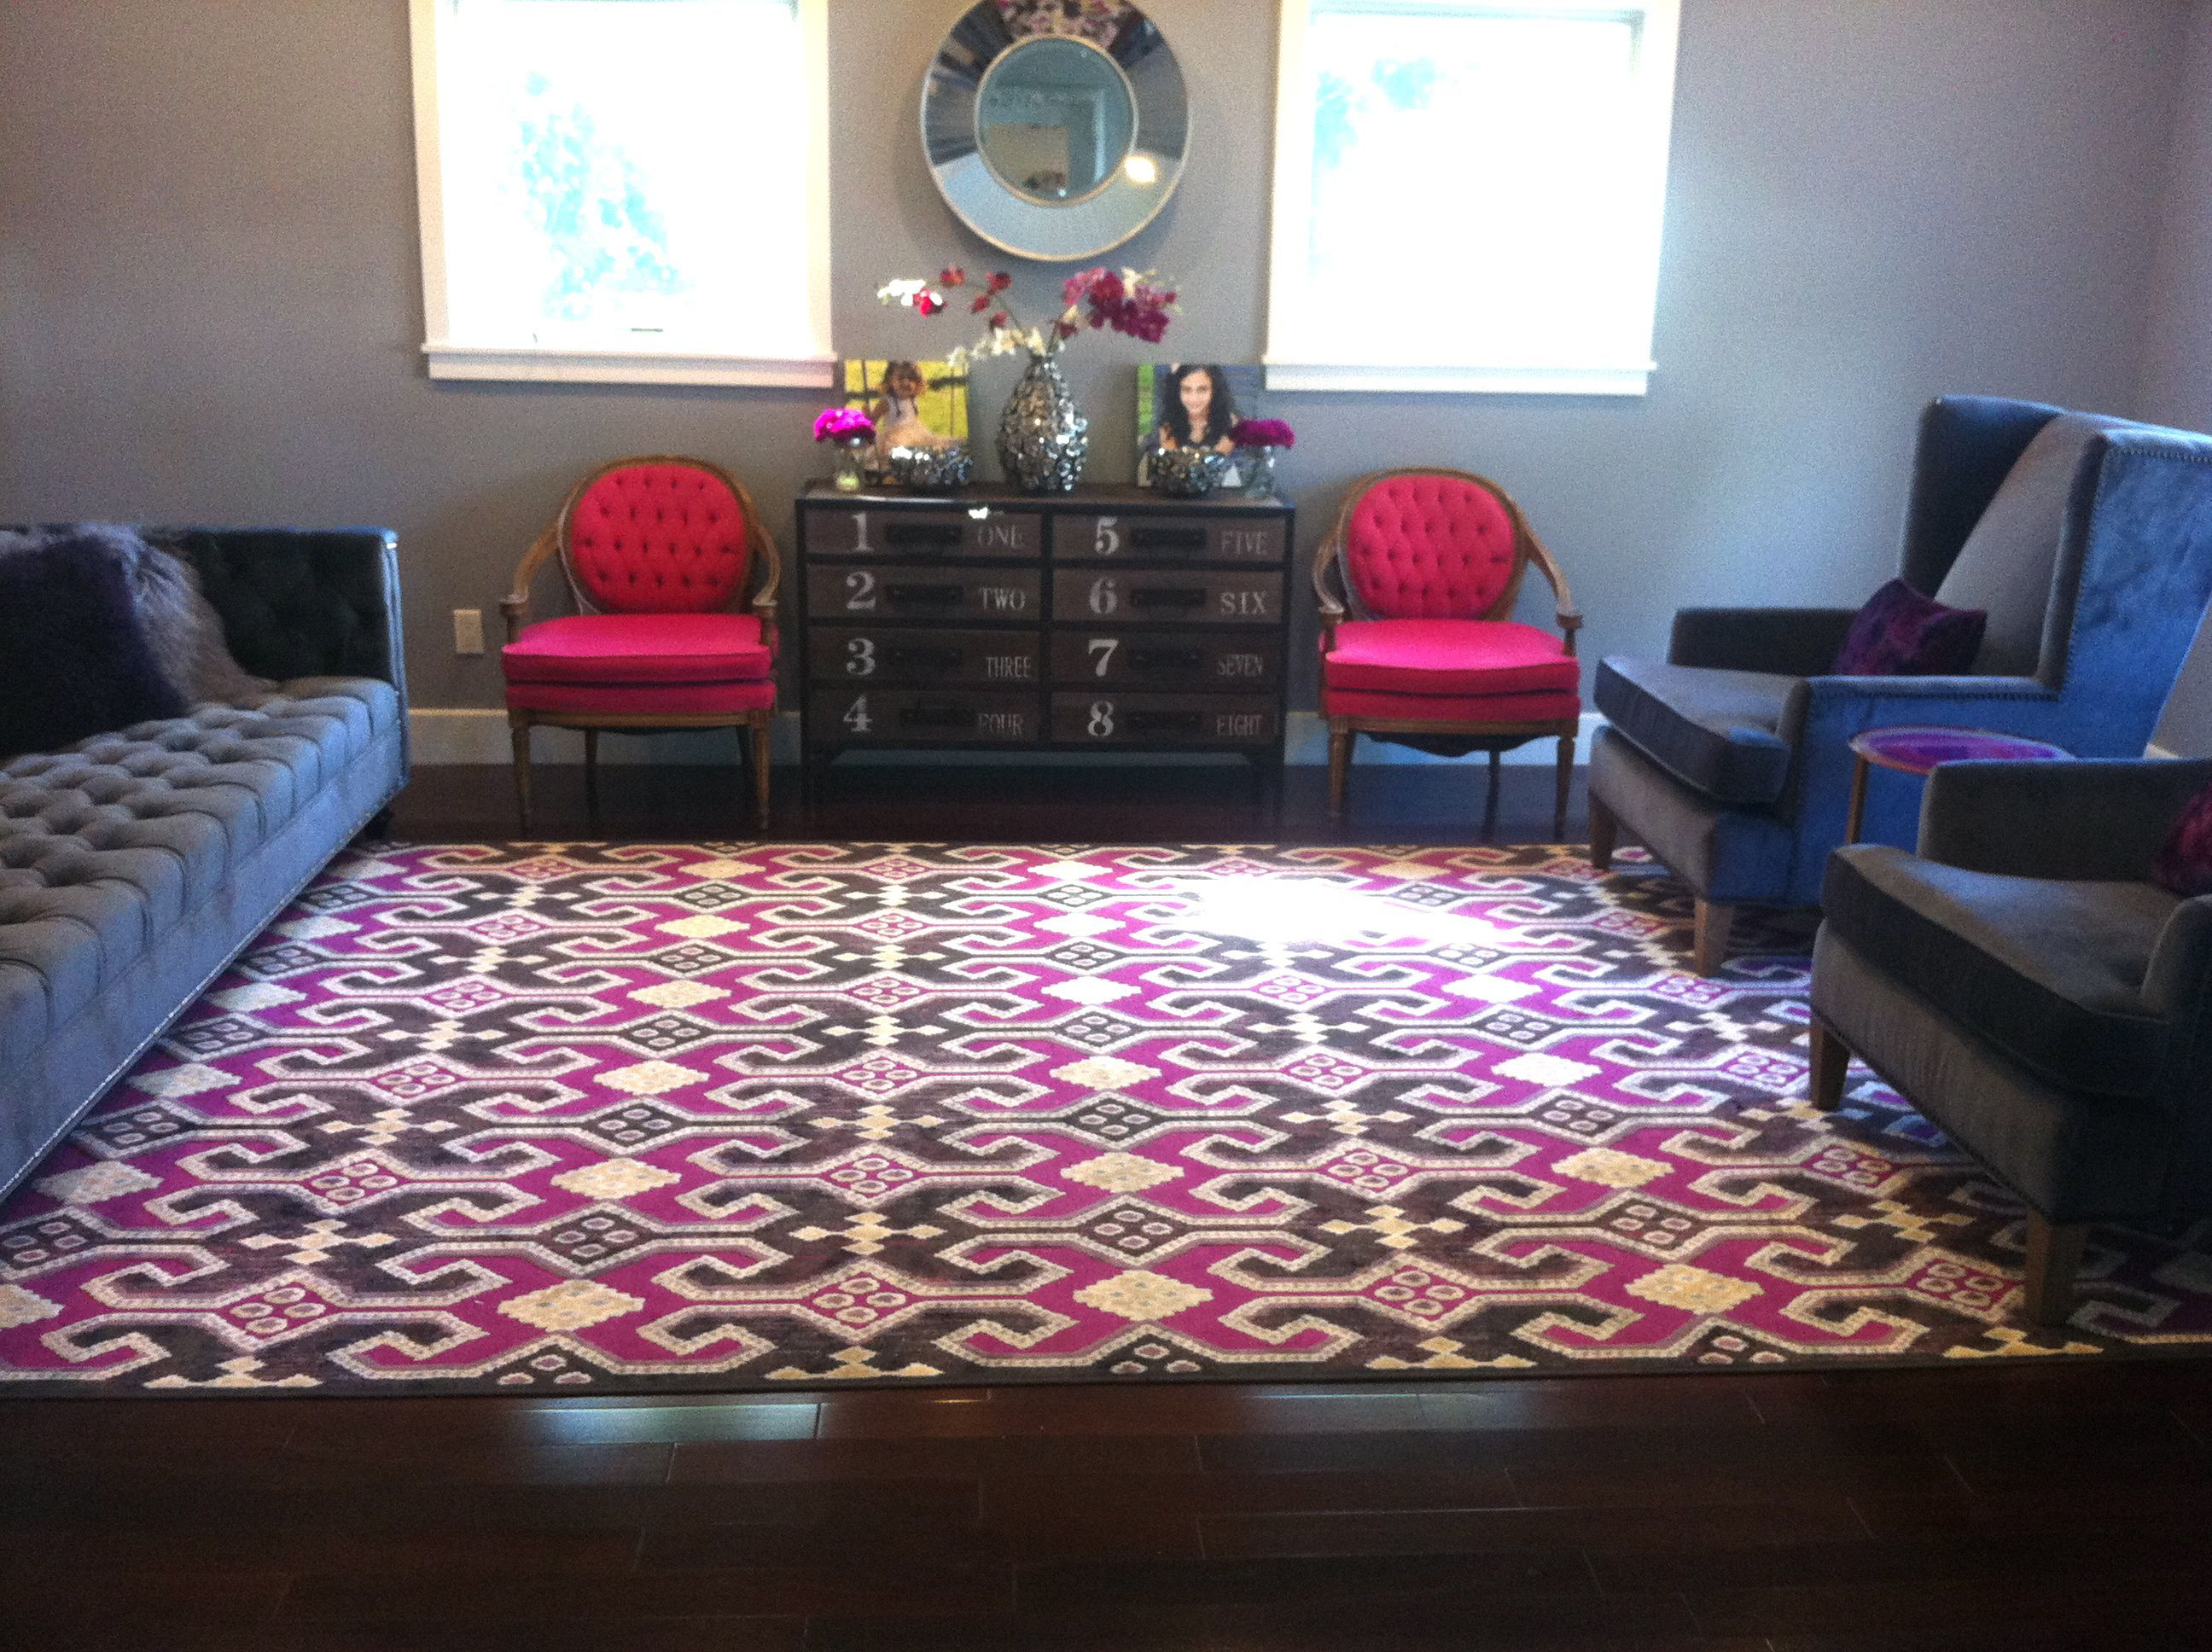 Home Goods Rug Mirror Dresser Wingback Chairs Vase